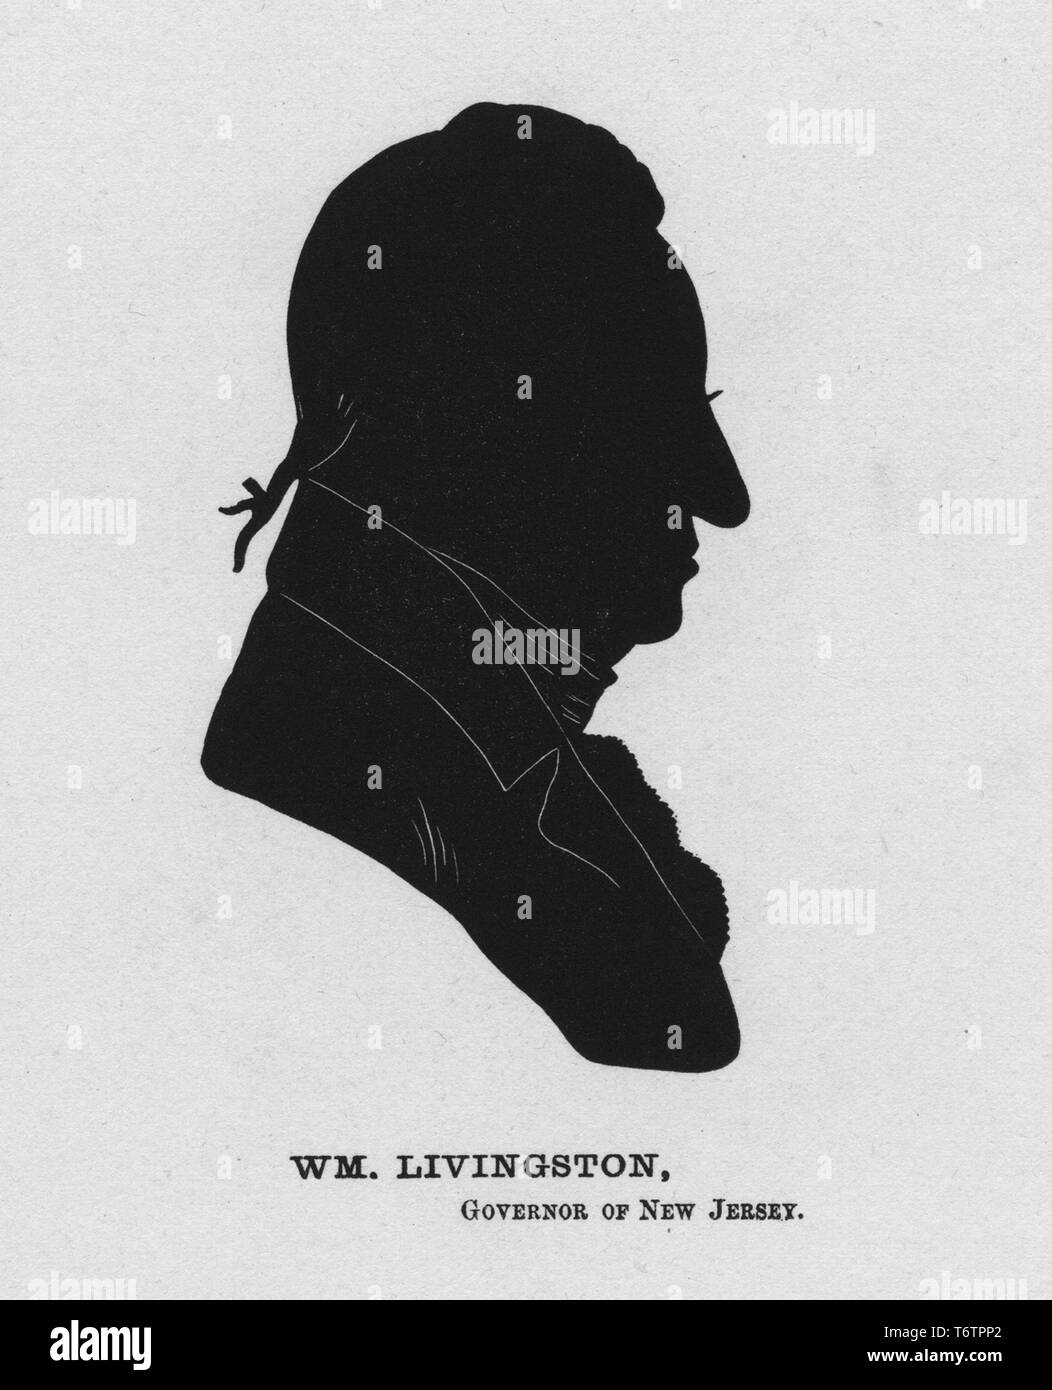 Silhouette profile of William Livingston, the Governor of New Jersey during the American Revolutionary War, an American politician from Albany, New York, 1774. From the New York Public Library. () - Stock Image